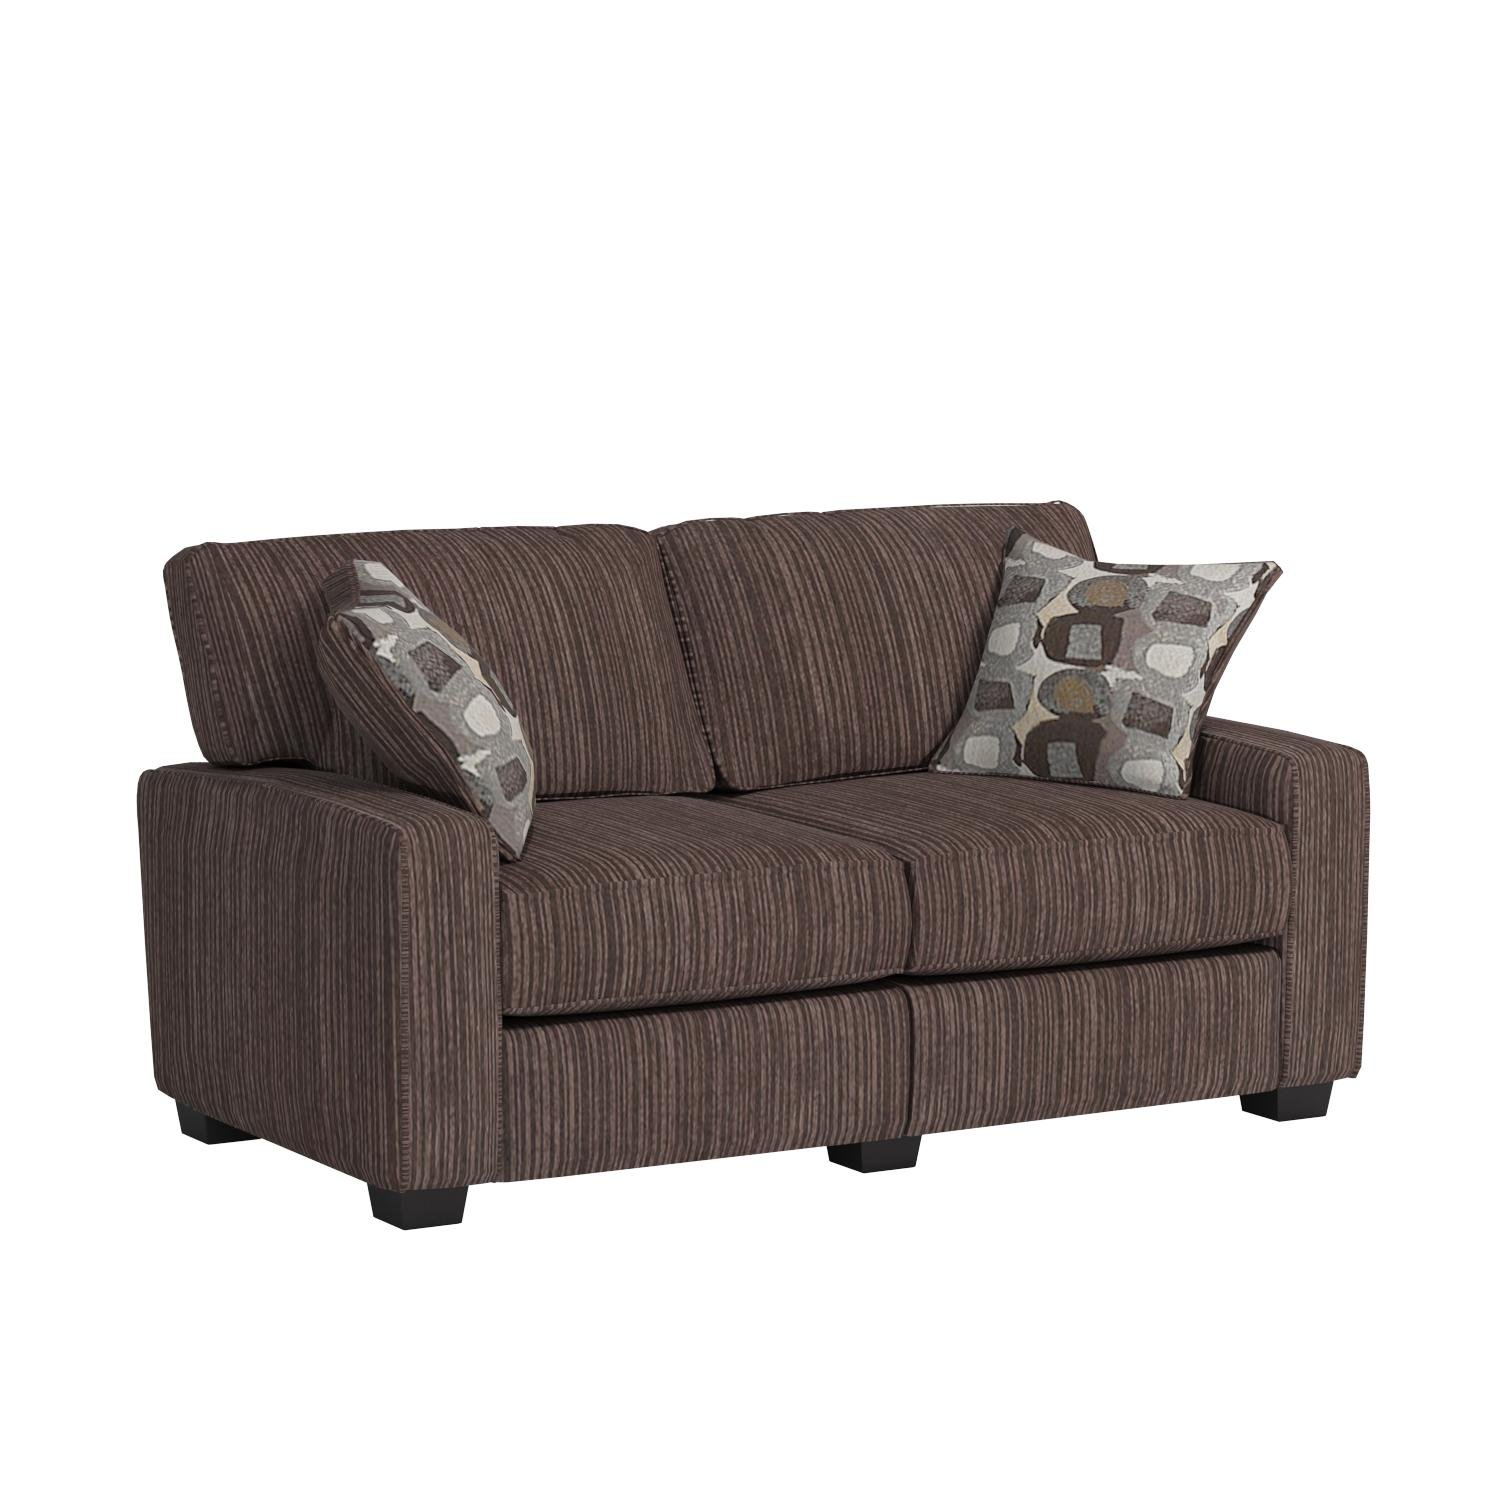 Serta RTA Palisades Collection 61'' Loveseat in Riverfront Brown by Serta (Image #13)